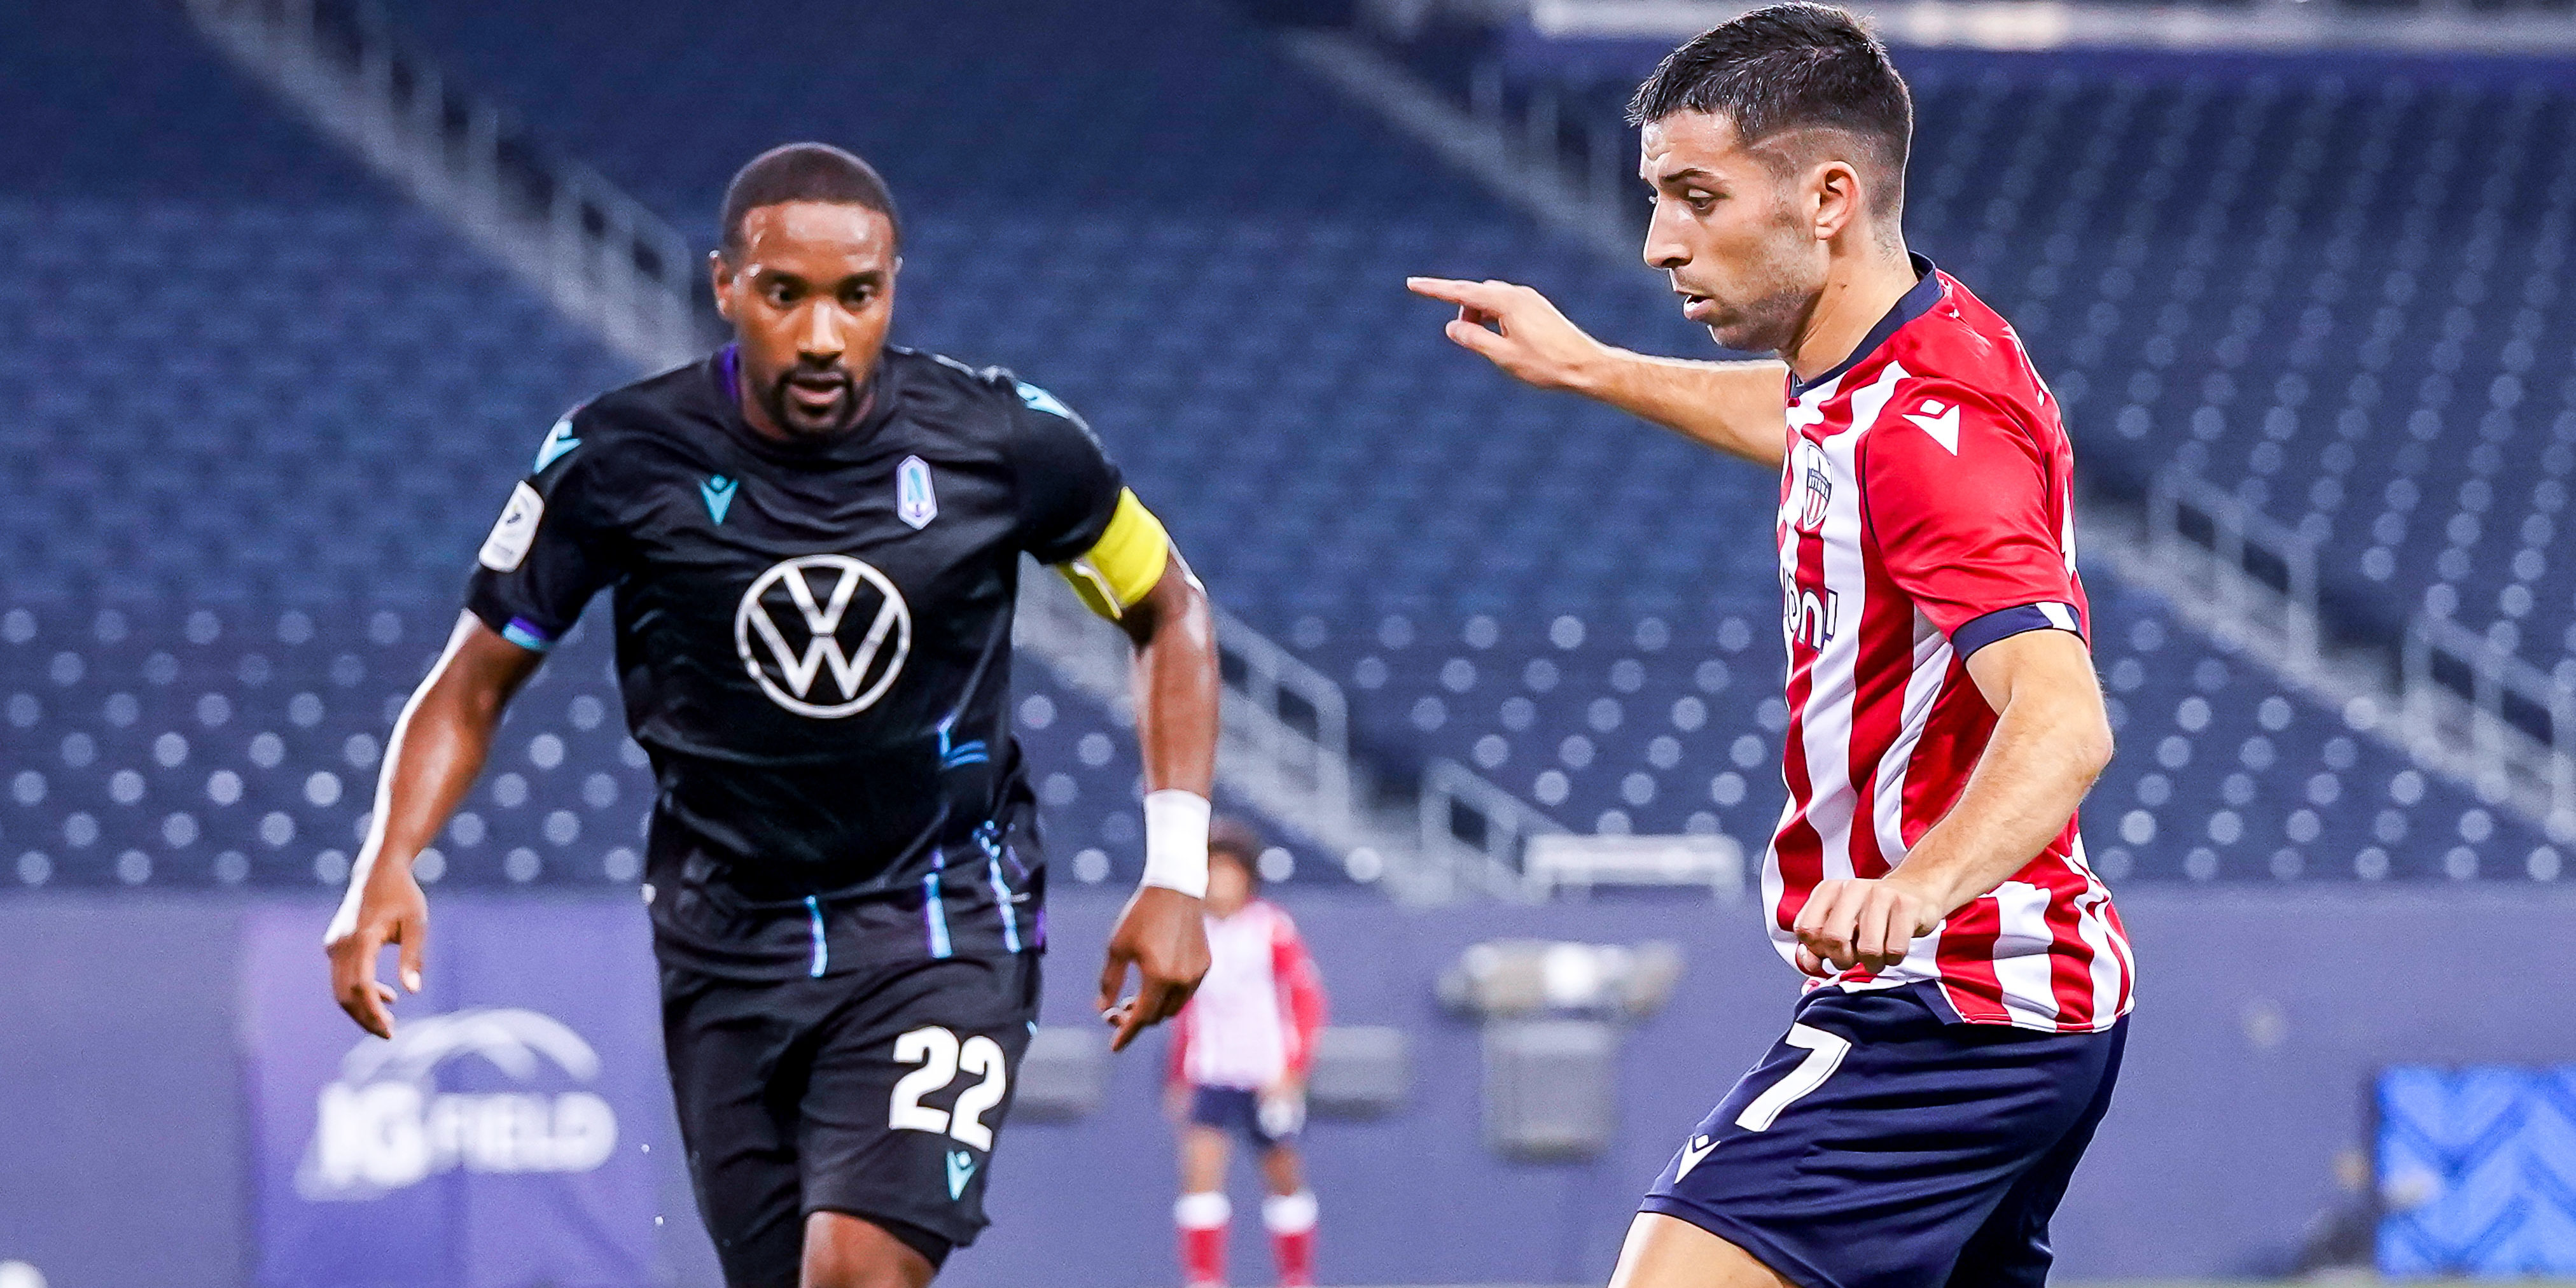 July 21, 2021. Pacific FC vs Atlético Ottawa. First-Half. Miguel Acosta of Atlético Ottawa plays the ball as Jamar Dixon of Pacific FC defends. (CPL)